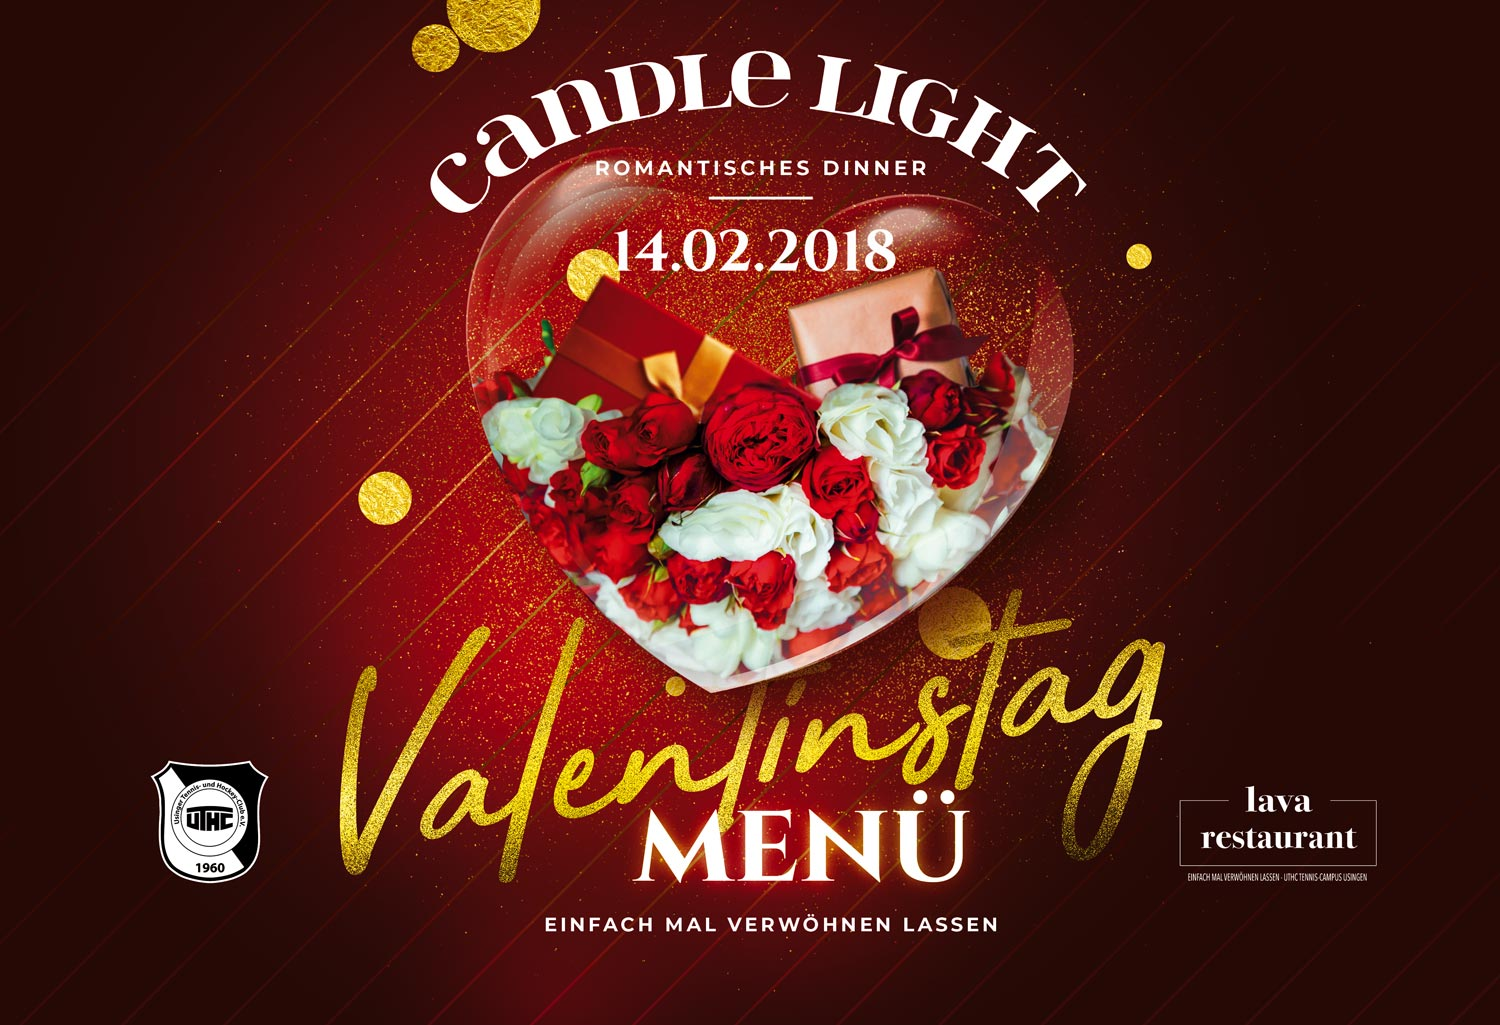 Lava-Restaurant-Usingen: UTHC Candle Light Dinner Usingen am Valentinstag 2018 Header 1500